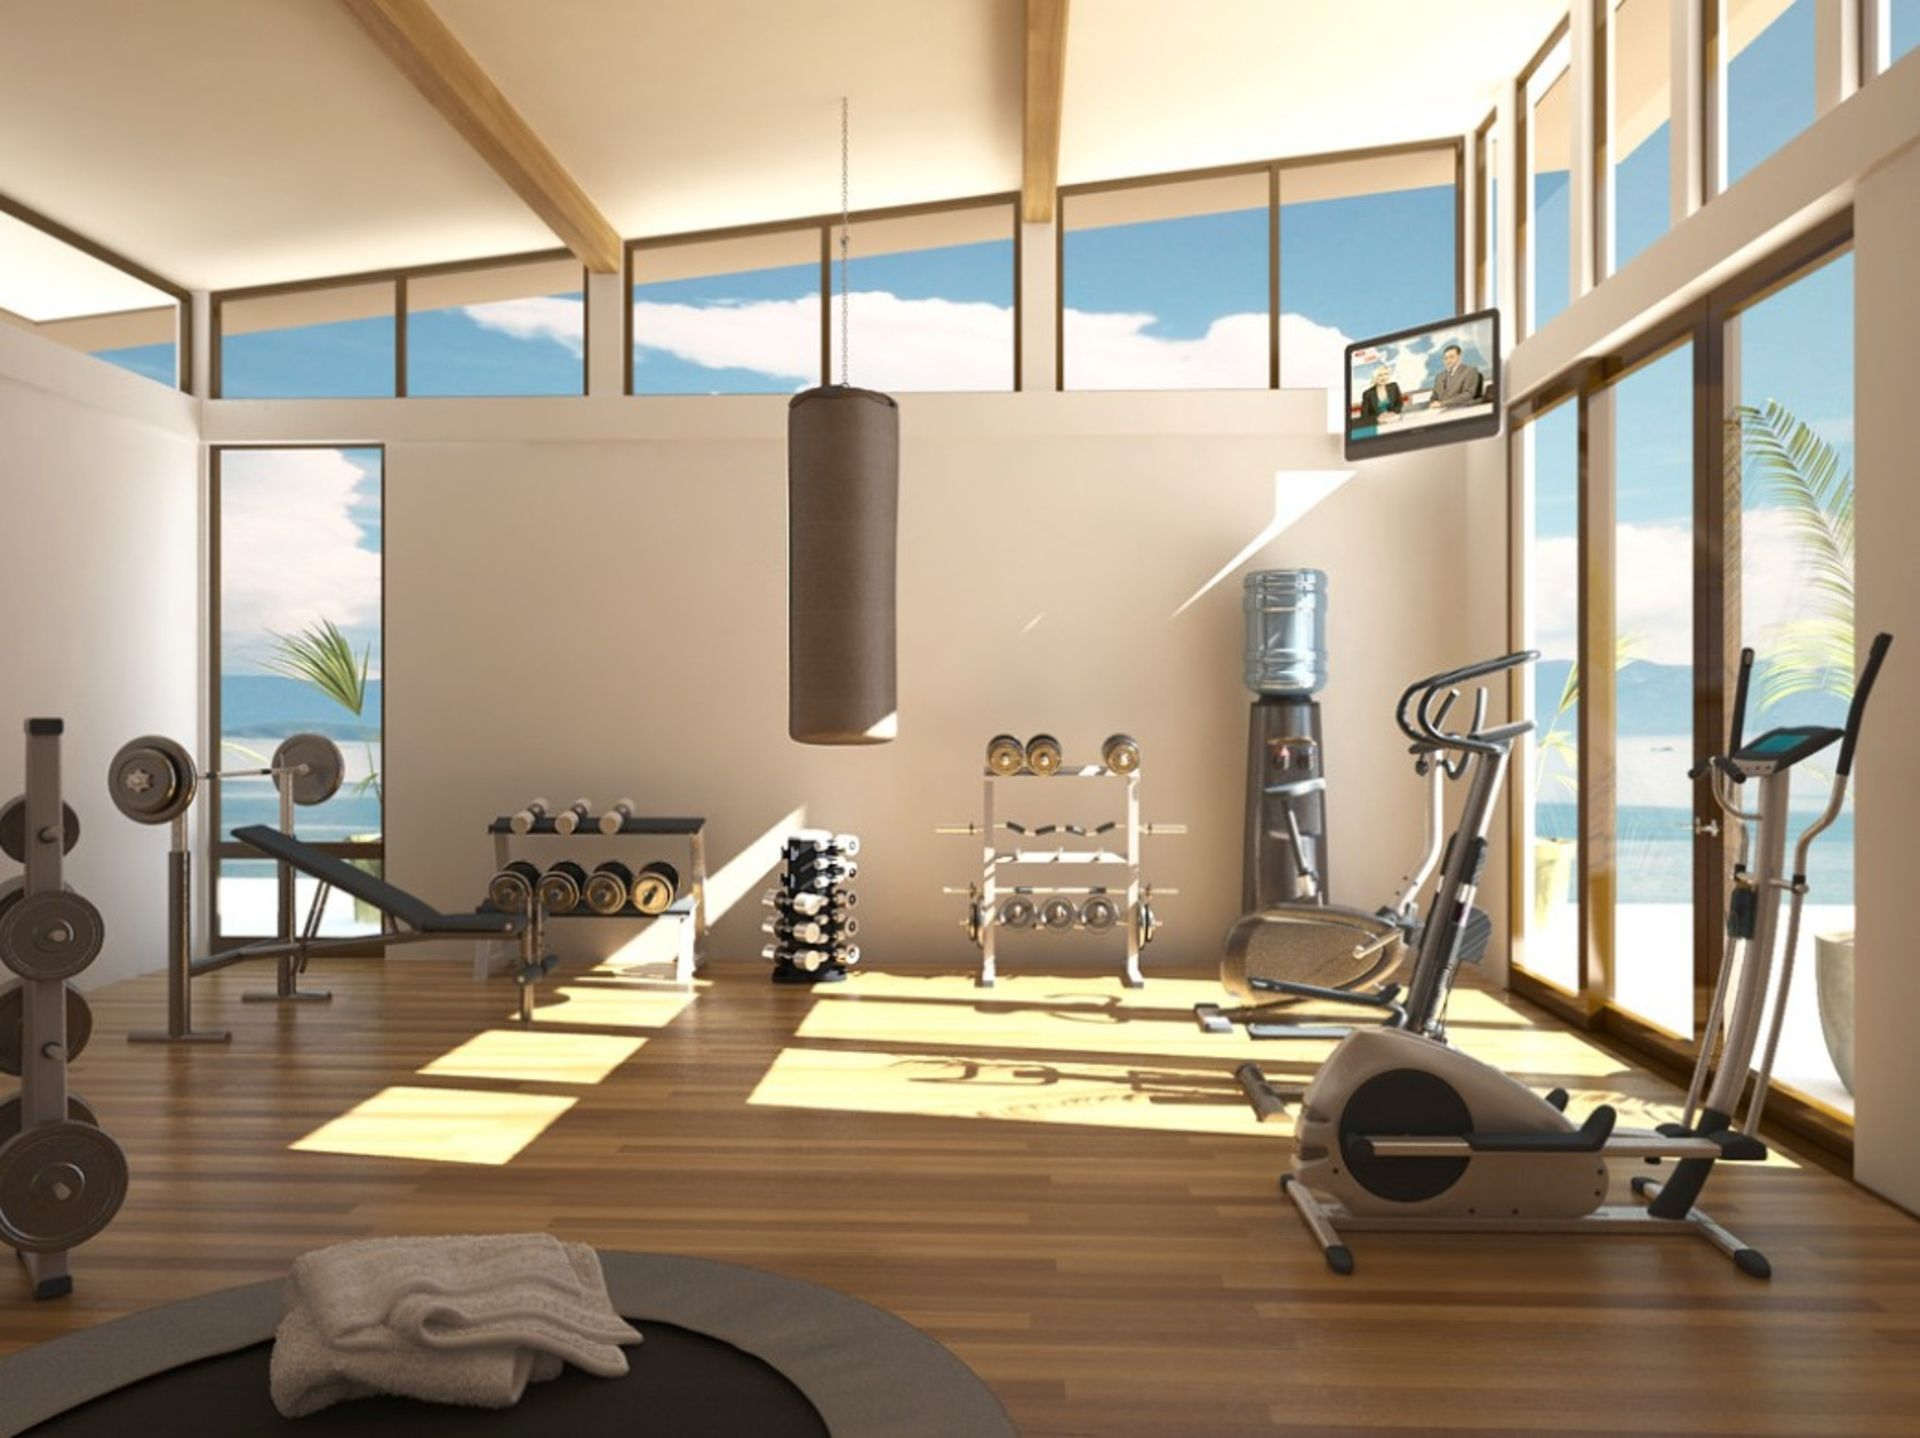 Interior: Luxury Home Fitness Design With Large Stainless Steel .